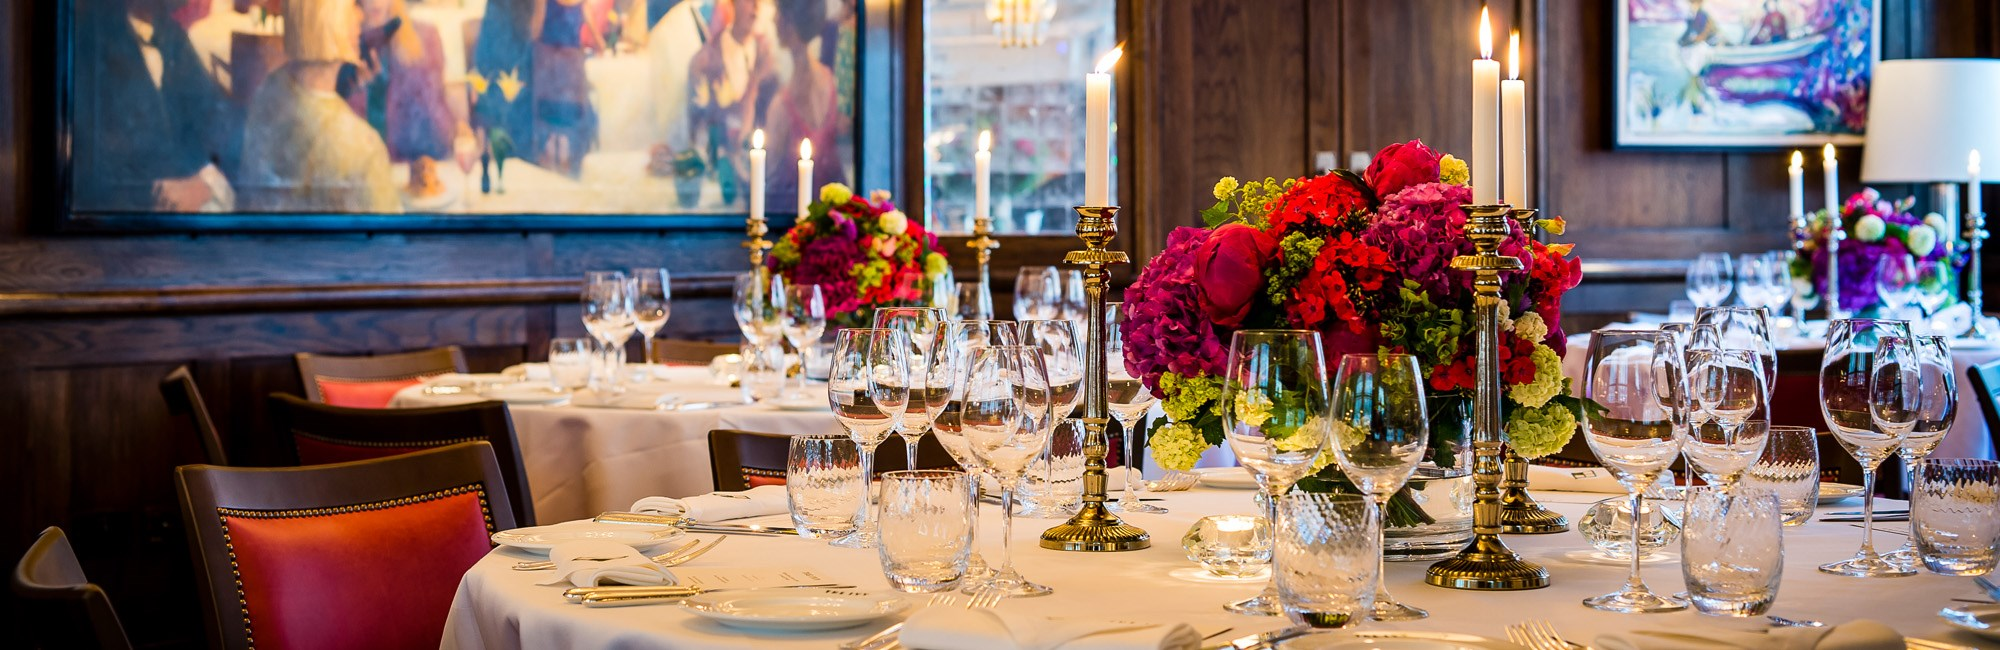 The private room at The Ivy in Covent Garden, ideal for Group Dining and Private Hire